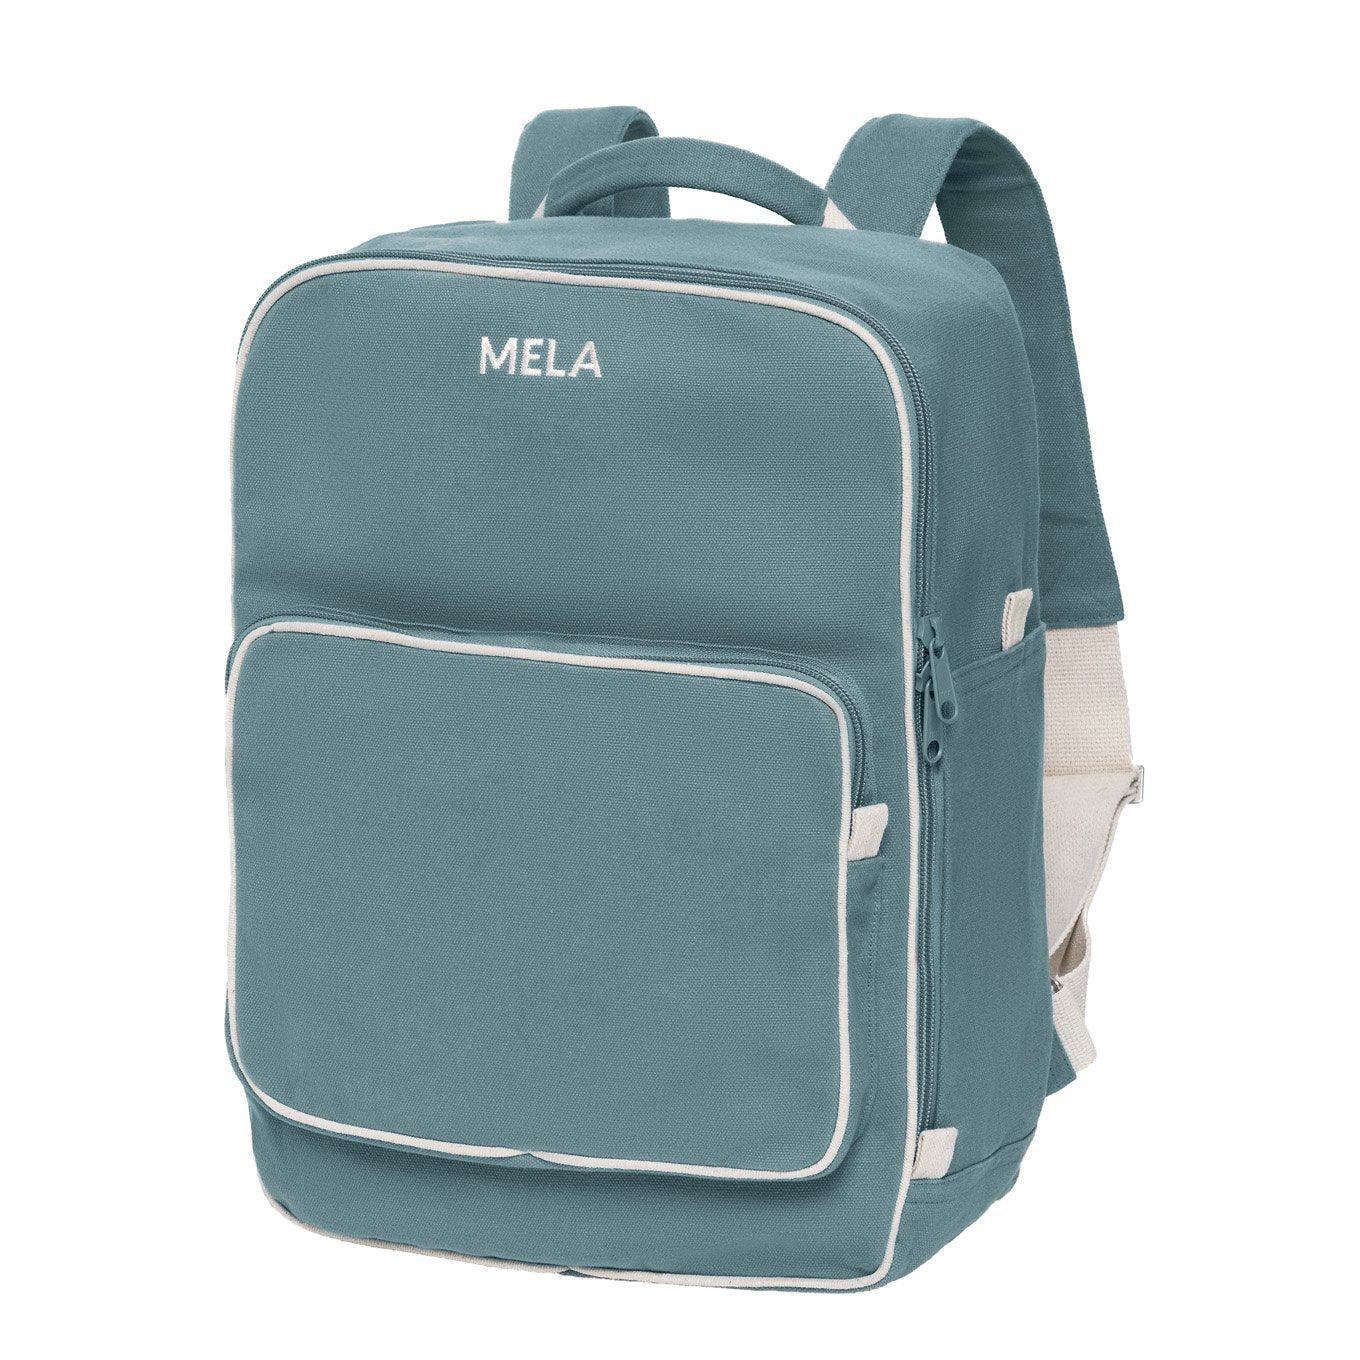 Backpack MELA II Teal - Komodo Fashion